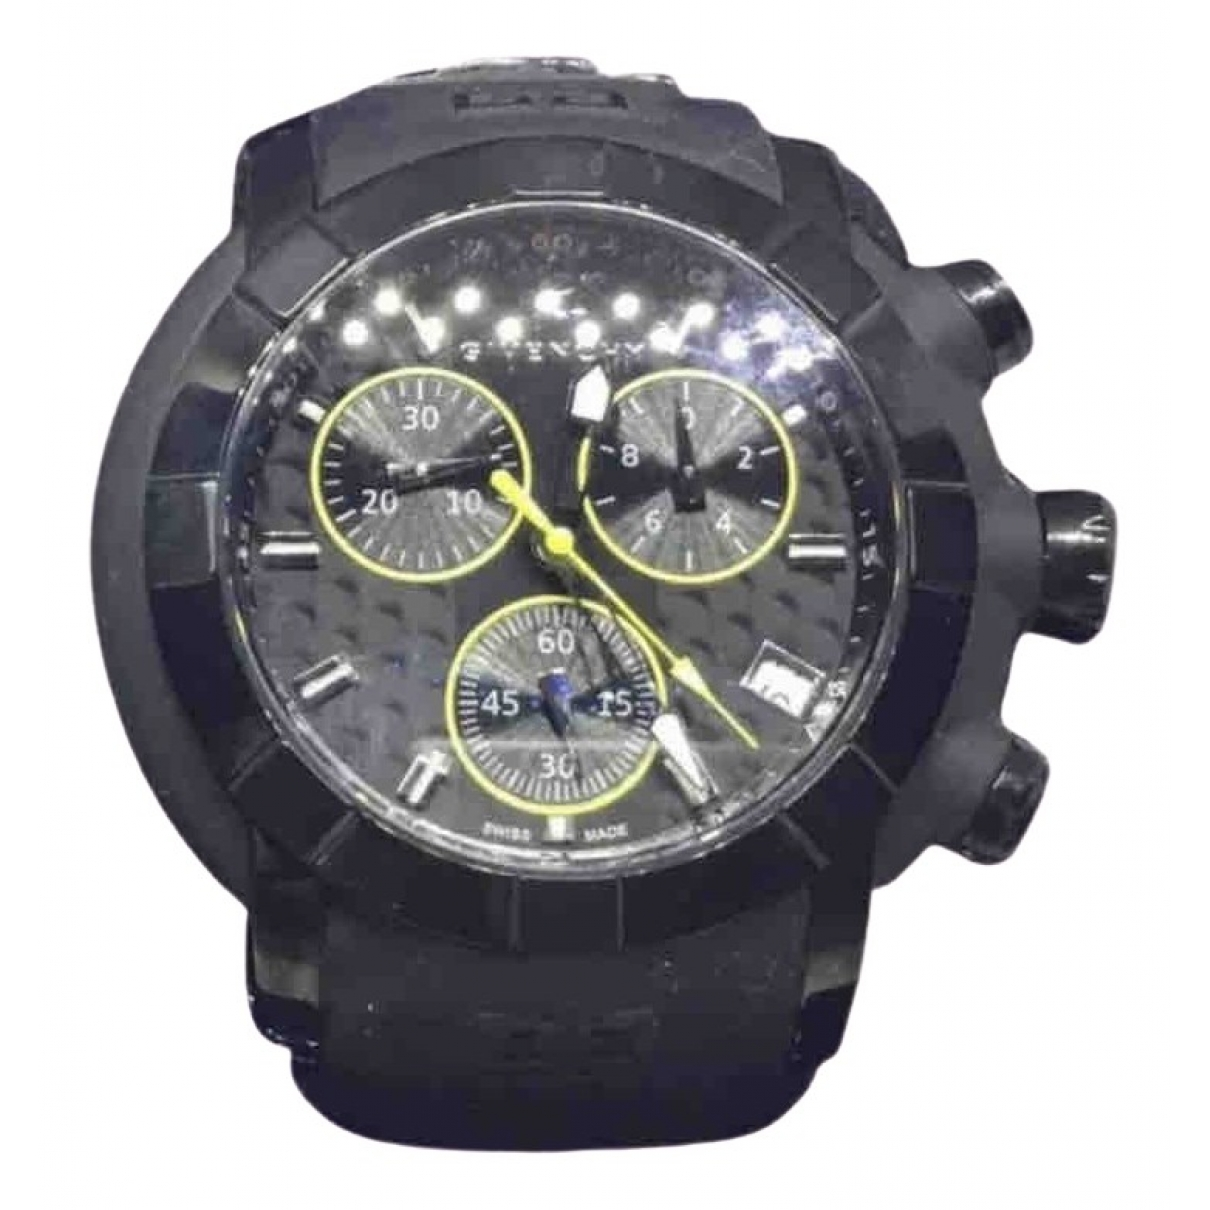 Givenchy \N Black Steel watch for Men \N